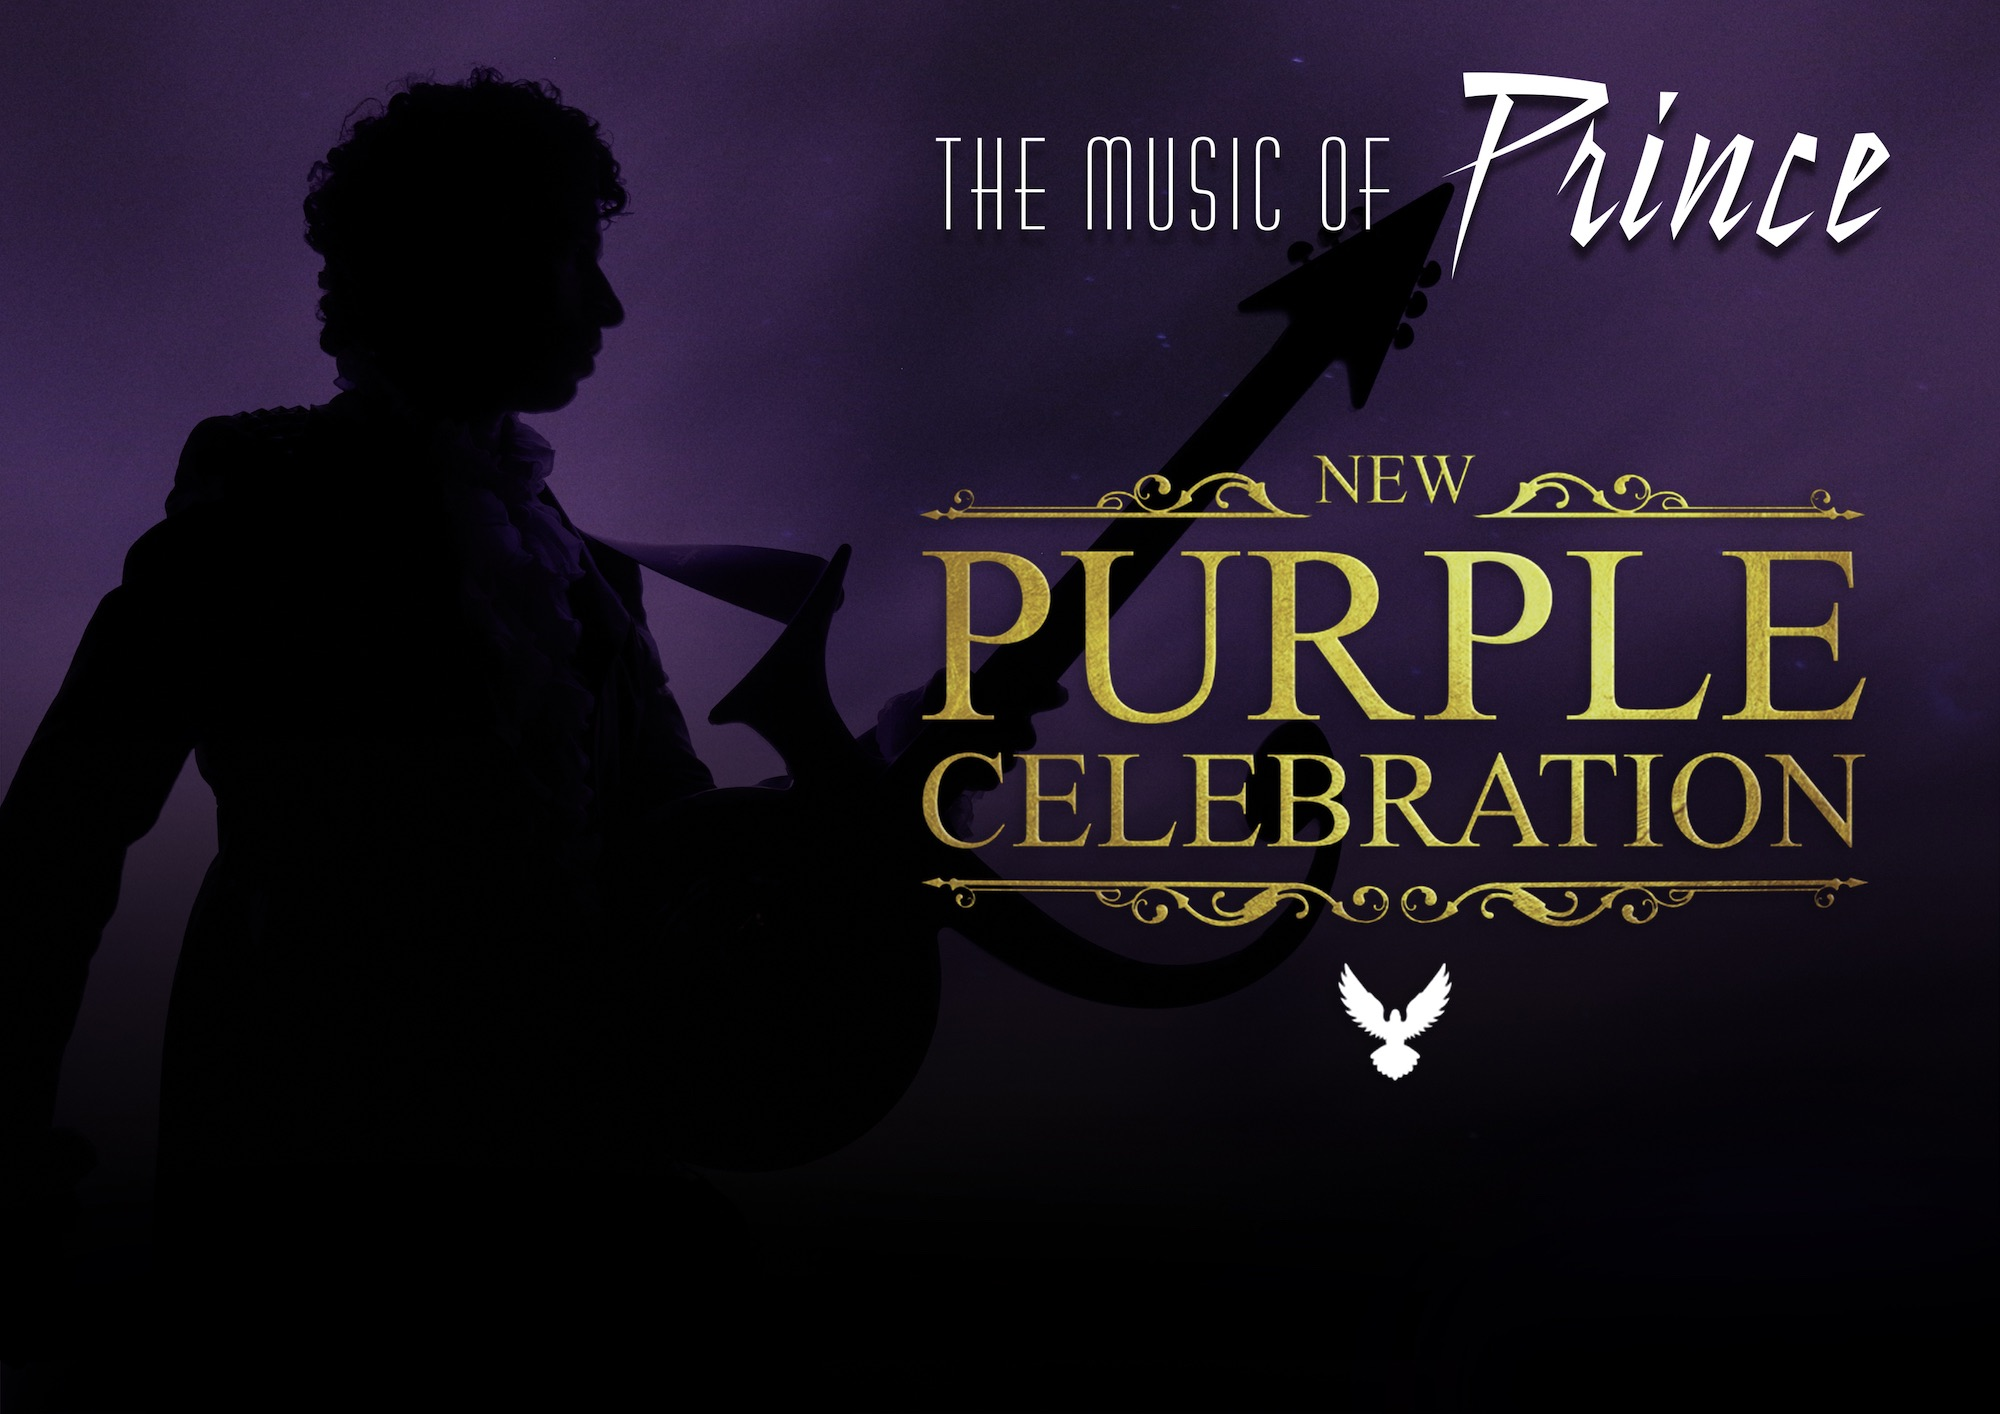 Poster for The Music of Prince